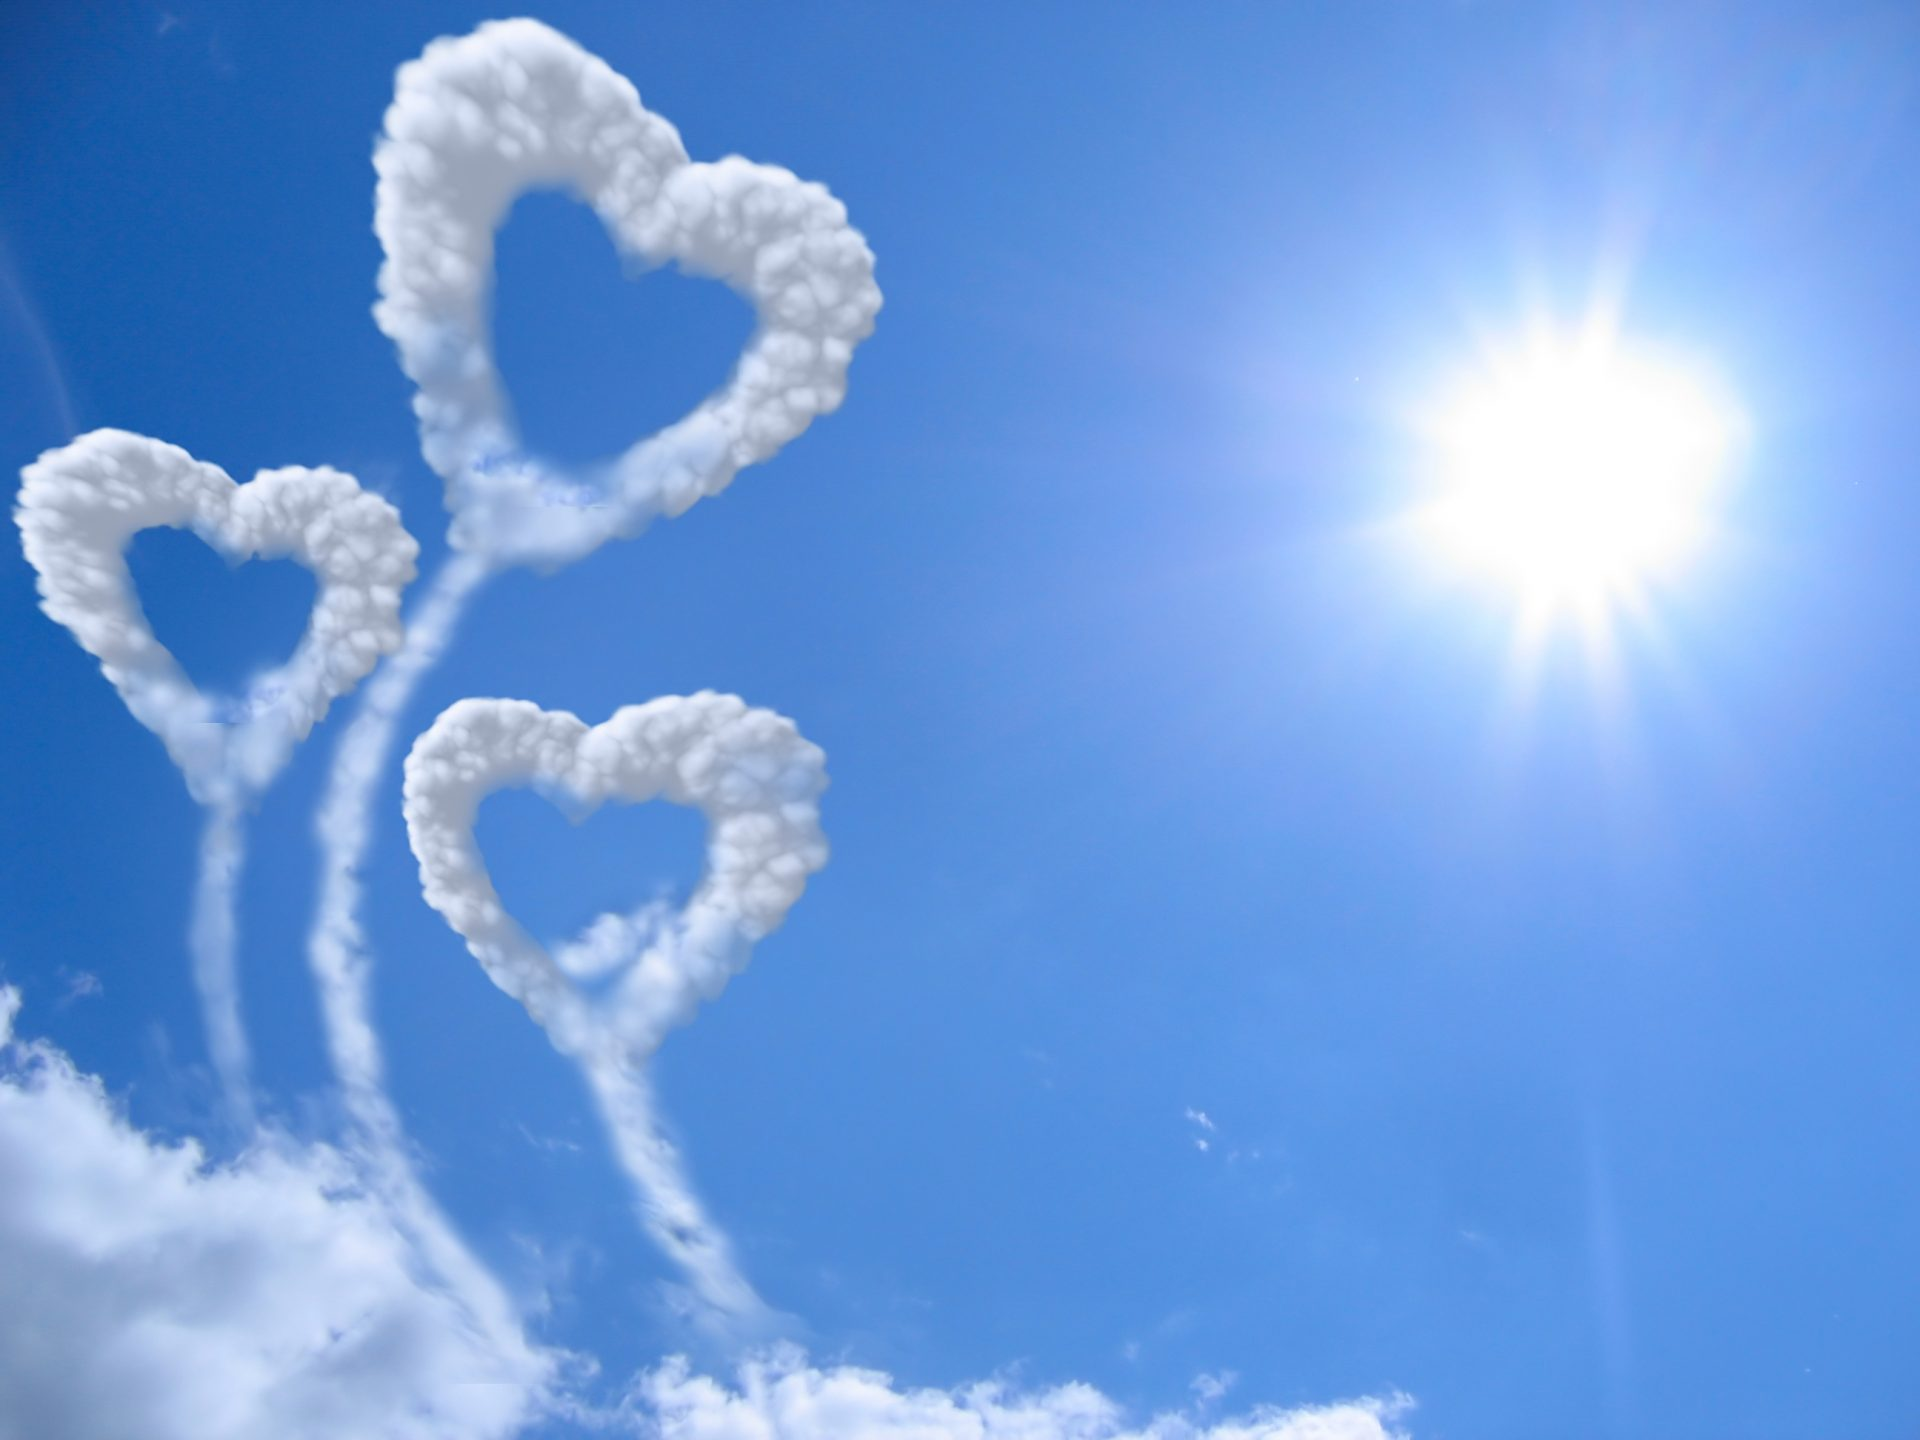 Romantic Heart In Cloud Hd Wallpapers Download For Heart